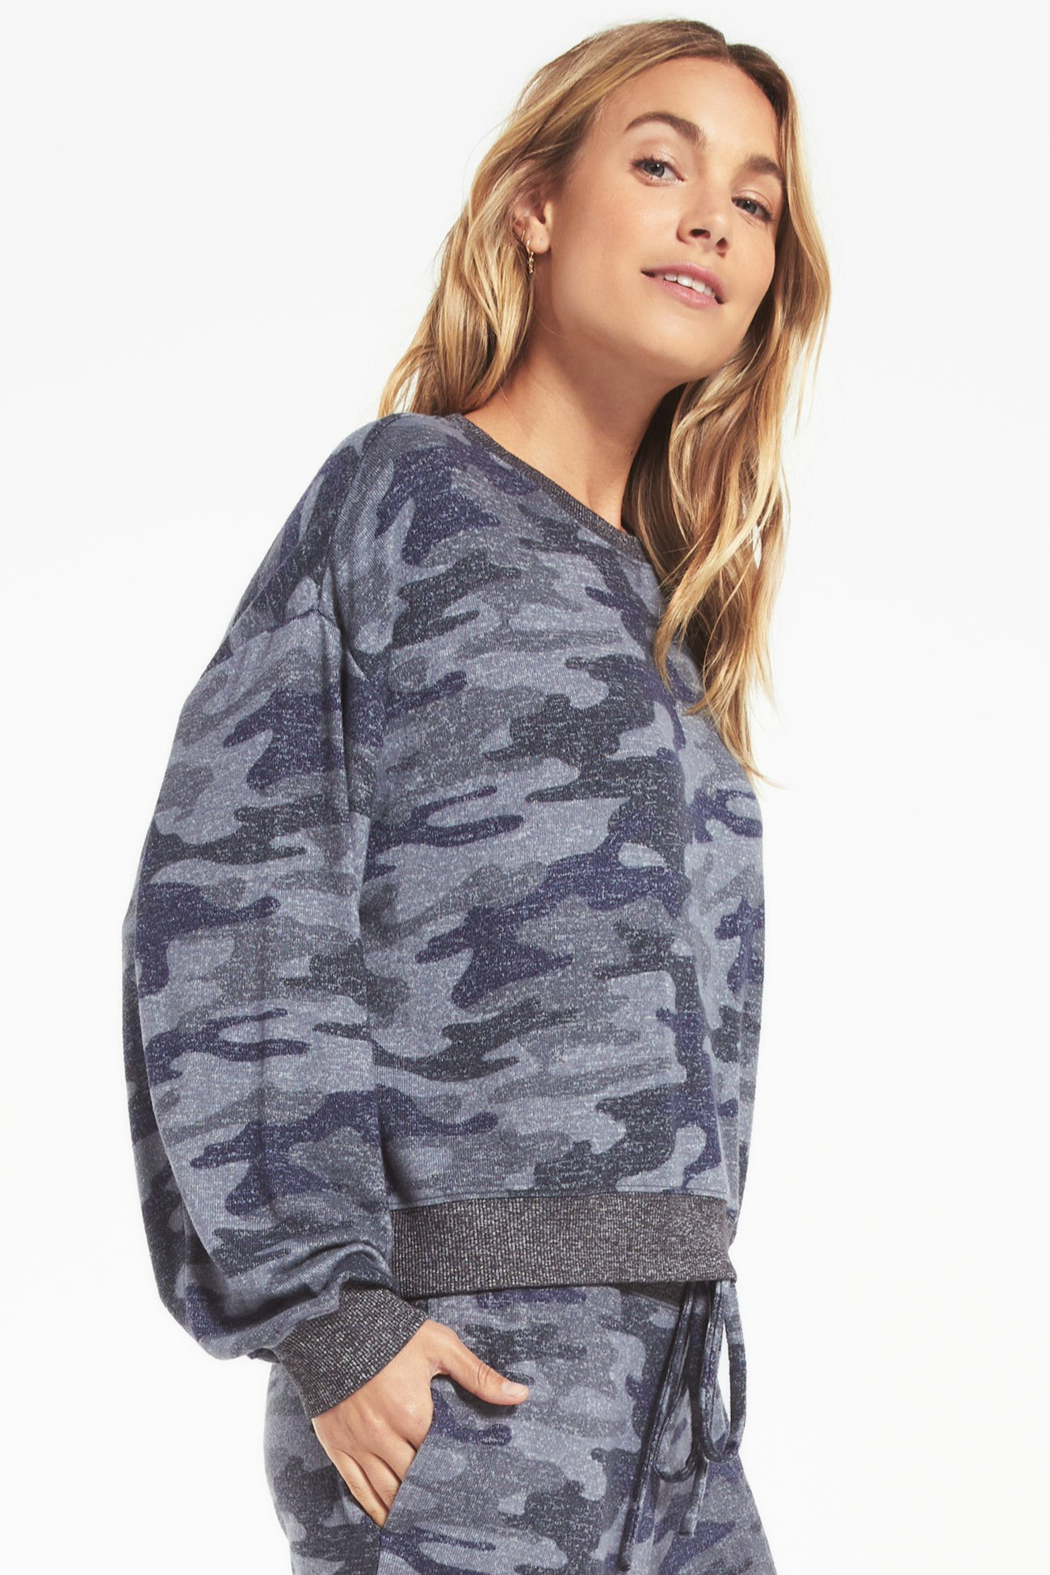 z supply Noa Camo Marled Top - Front Full Image